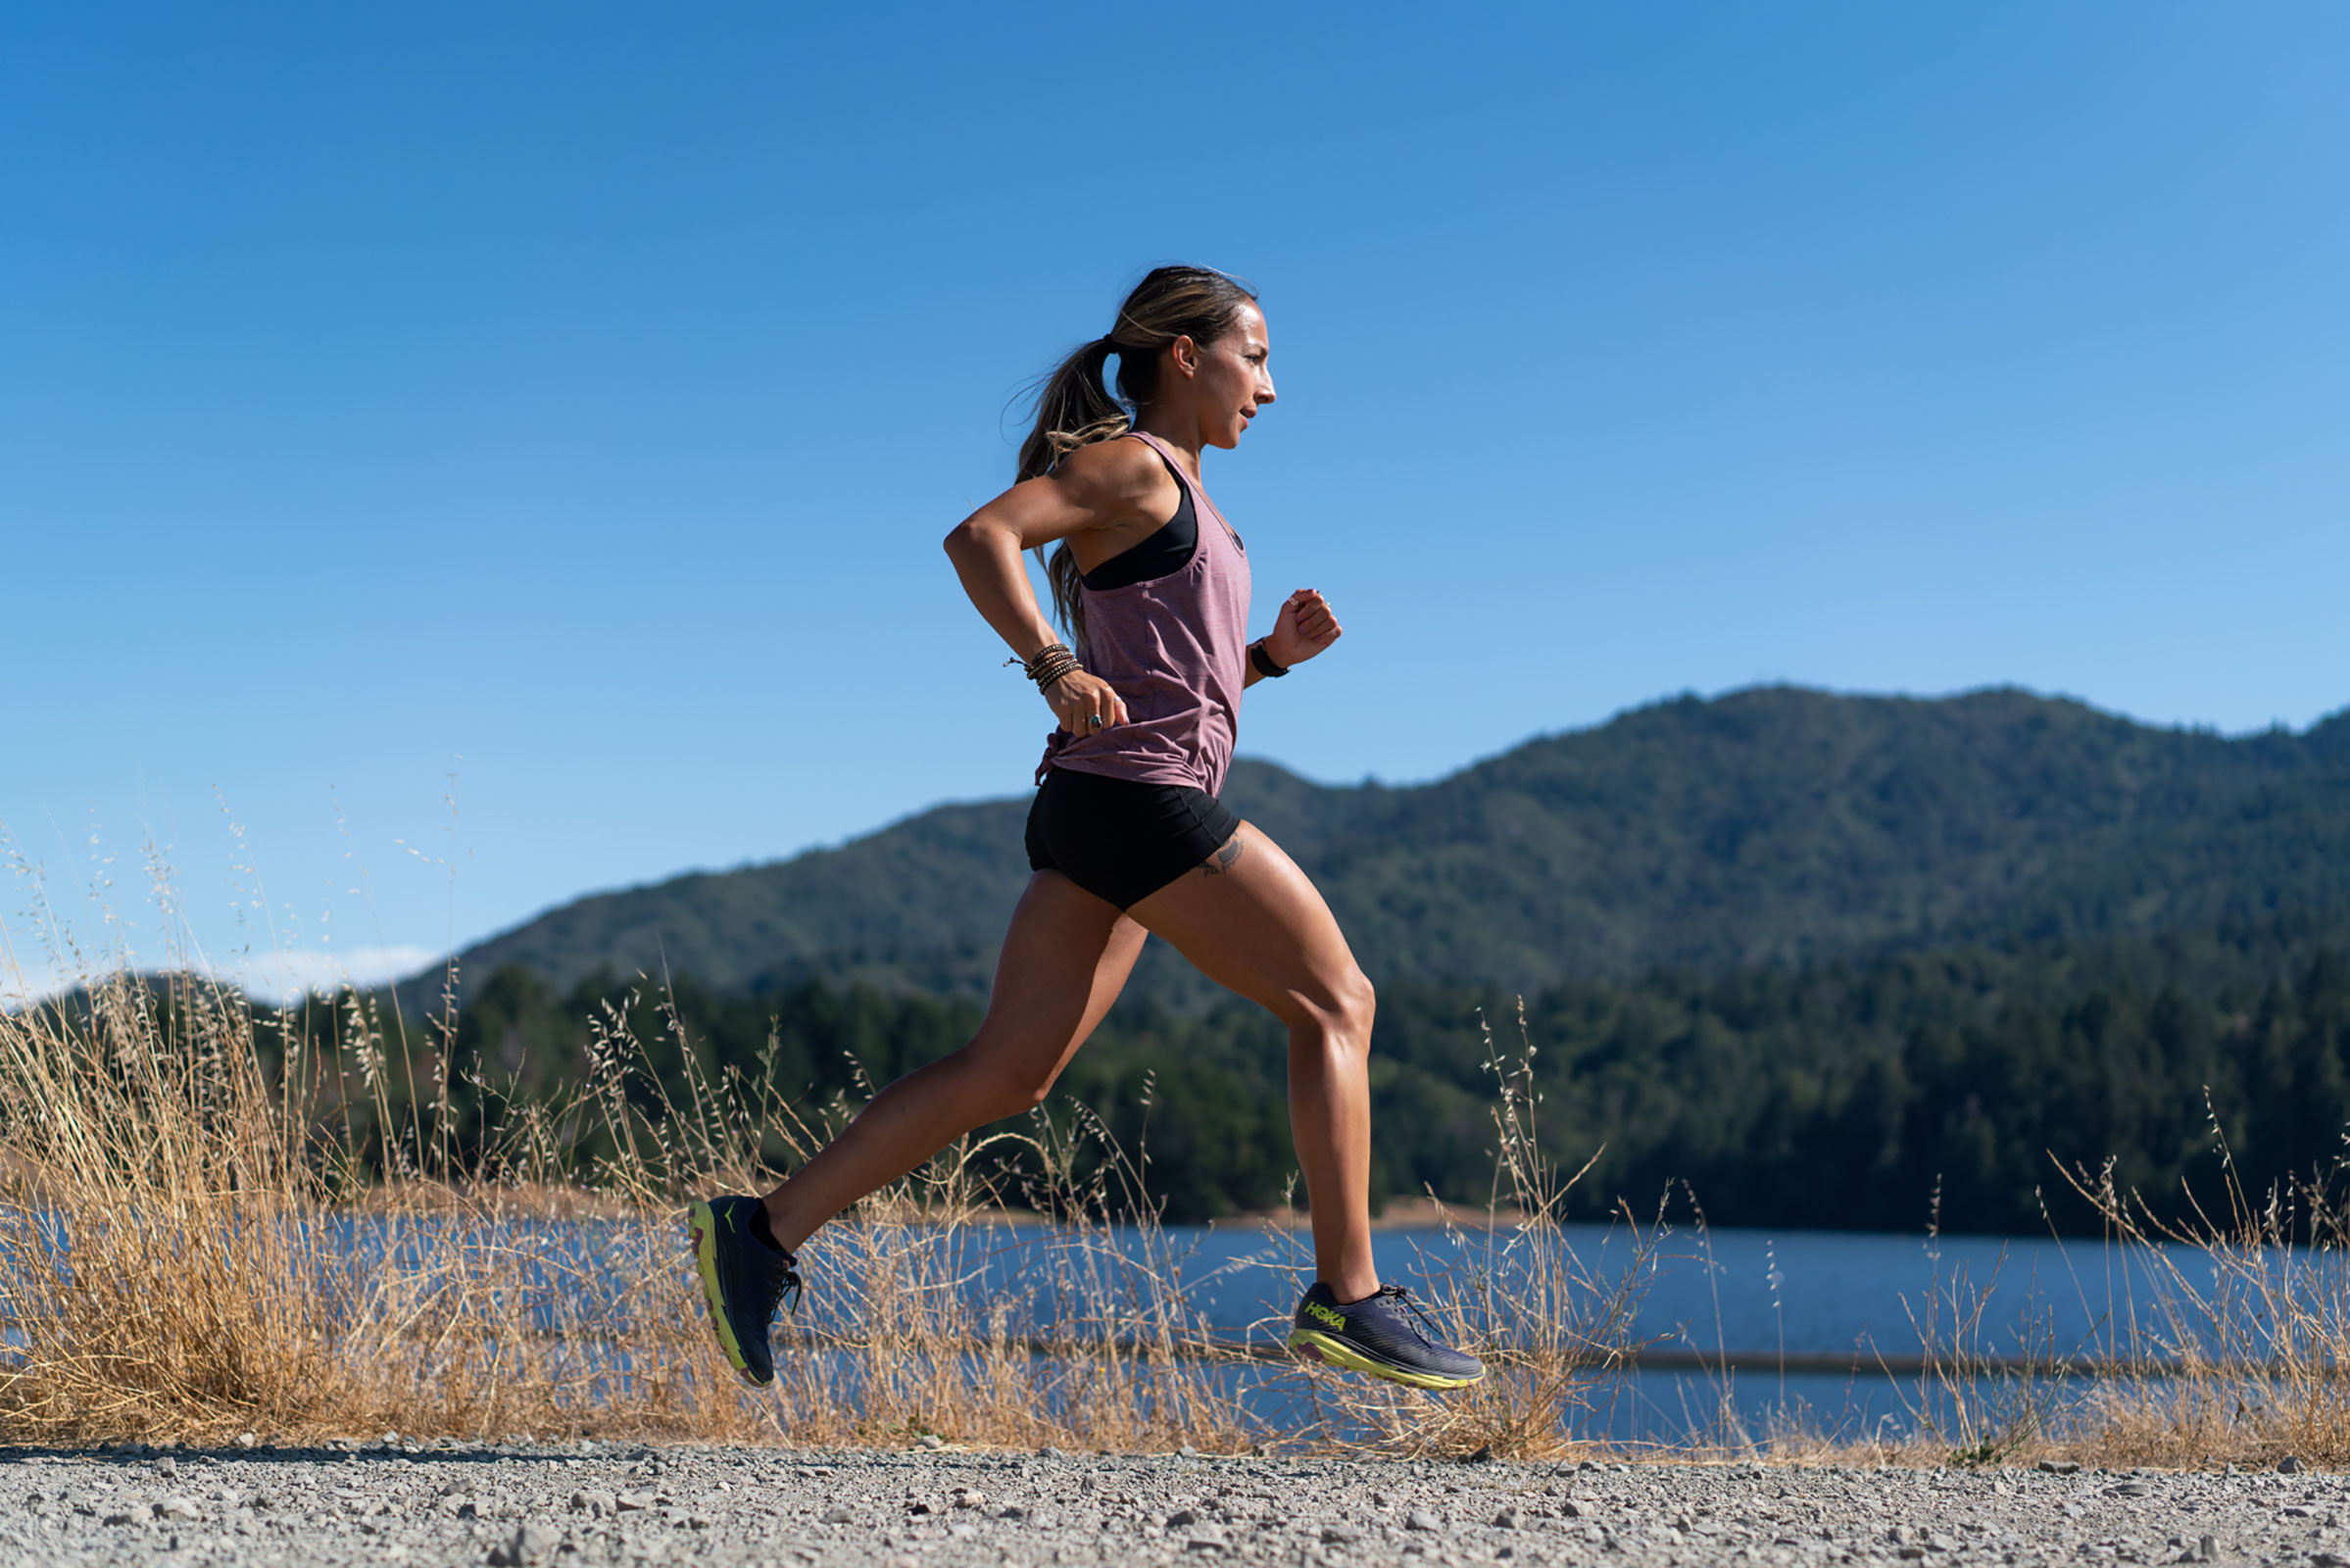 Woman trail running in Hoka One One shoes on sunny day